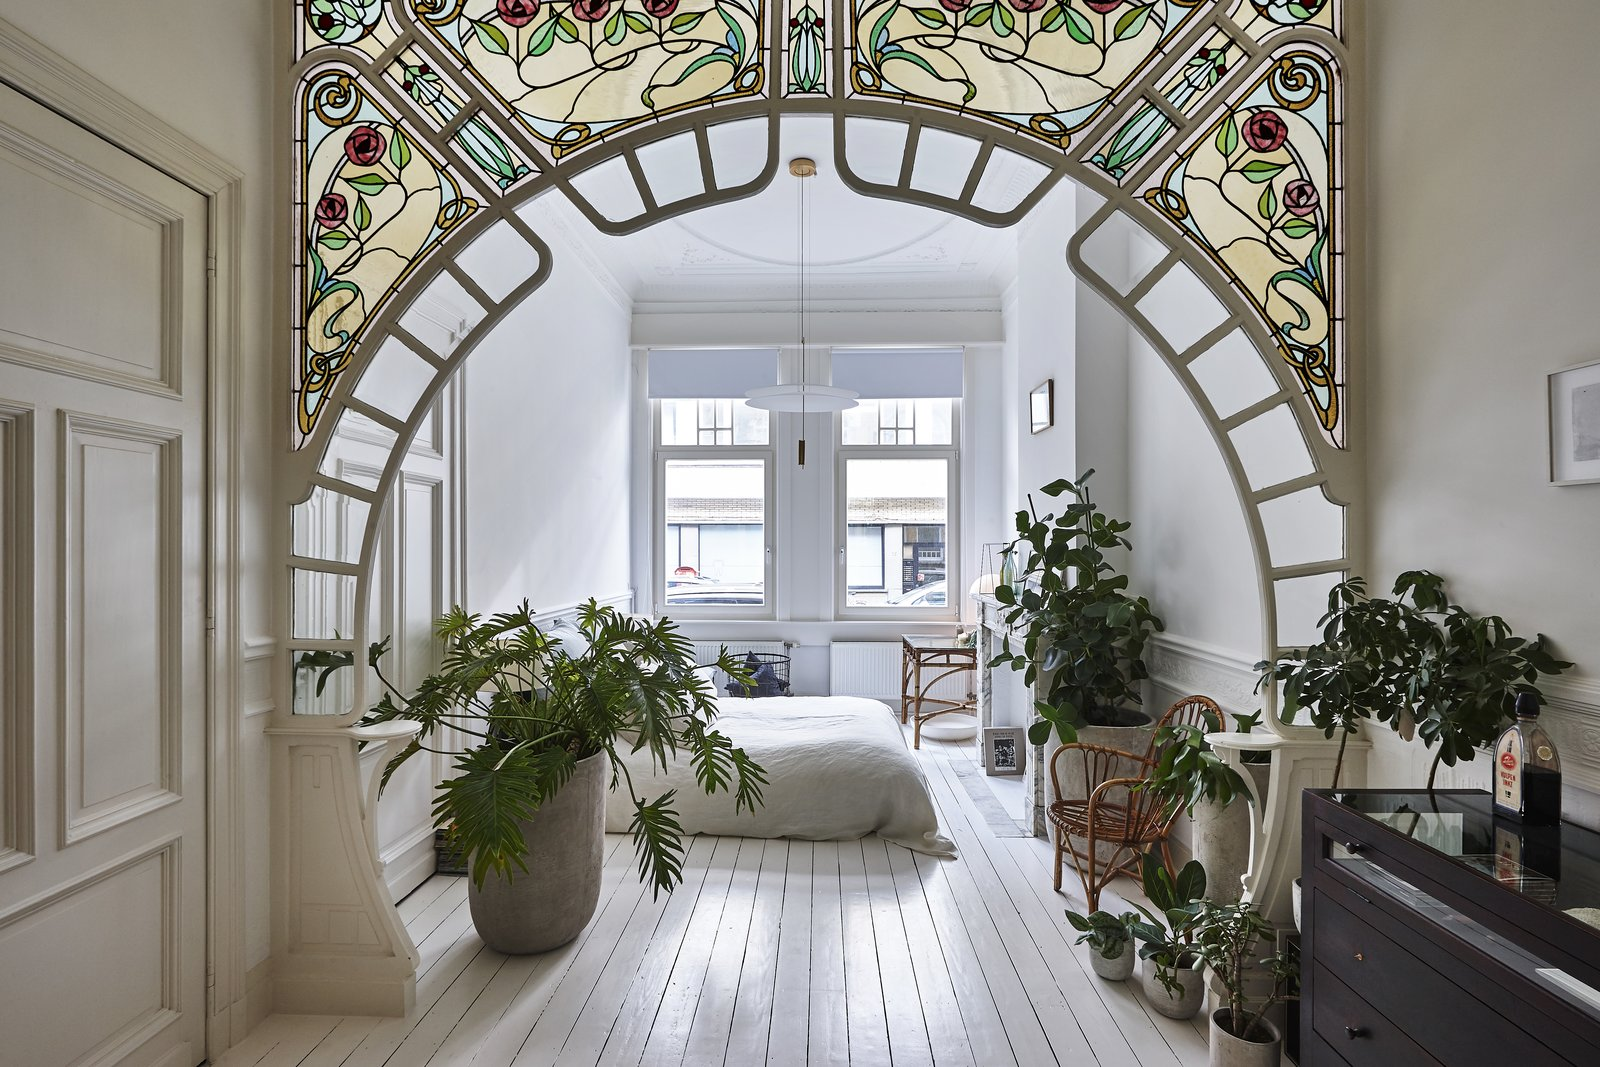 Bedroom, Pendant, Bed, Chair, and Painted Wood Antwerp Apartment by Anouk Taeymans is a Best Renovation nominee.  Best Bedroom Painted Wood Bed Photos from An Antwerp Apartment Captures the Spirit of the Belle Époque